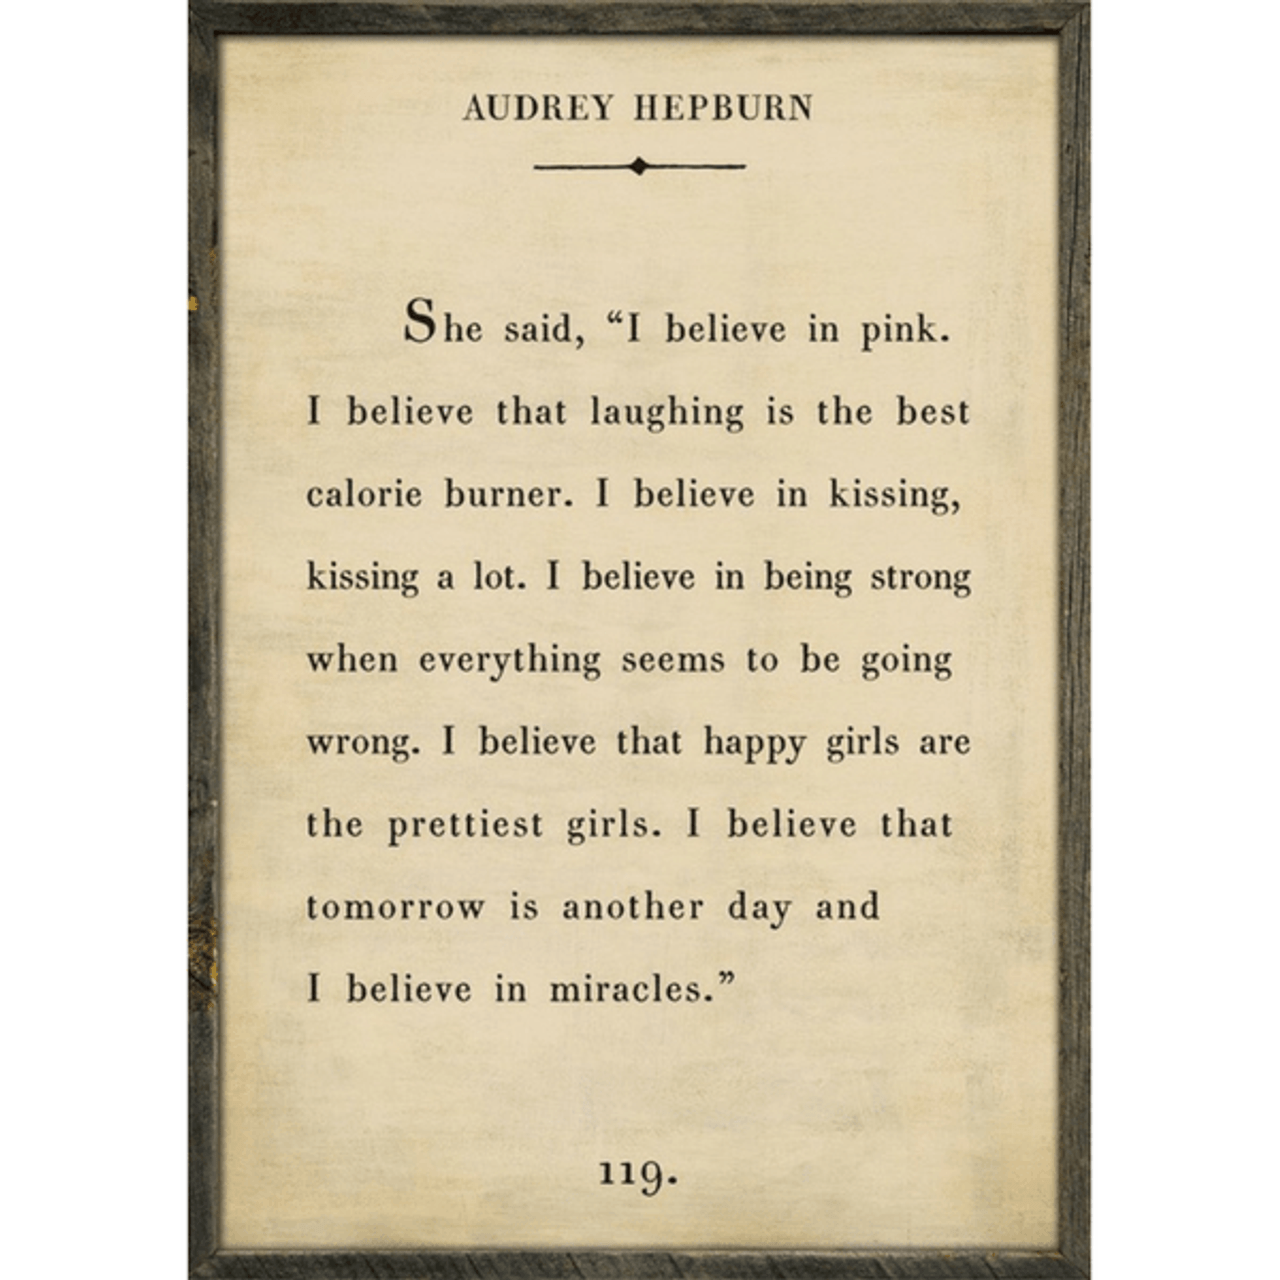 """Quote from Audrey Hepburn says,""""I believe in pink. I believe that laughing is the best calorie burner. I believe in kissing, kissing a lot. I believe in being strong when everything seems to be going wrong. I believe that happy girls are the prettiest girls. I believe that tomorrow is another day and I believe in miracles."""""""